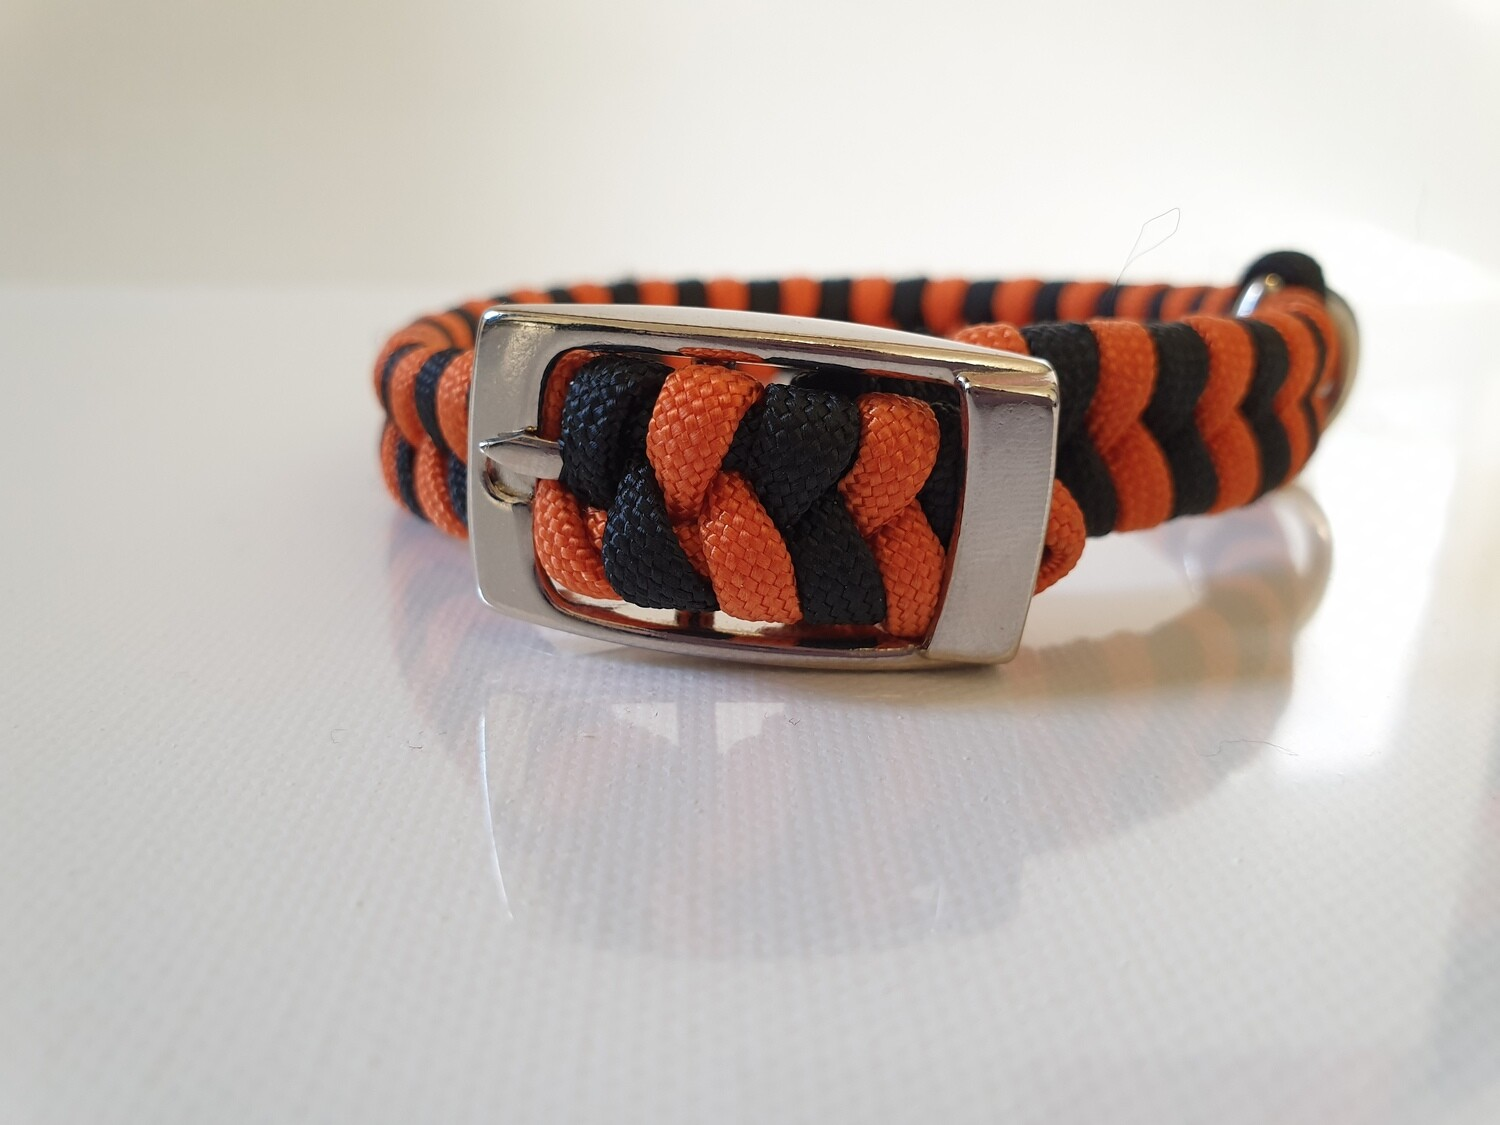 Flat Braid Extra Small Orange/Black Dog Collar